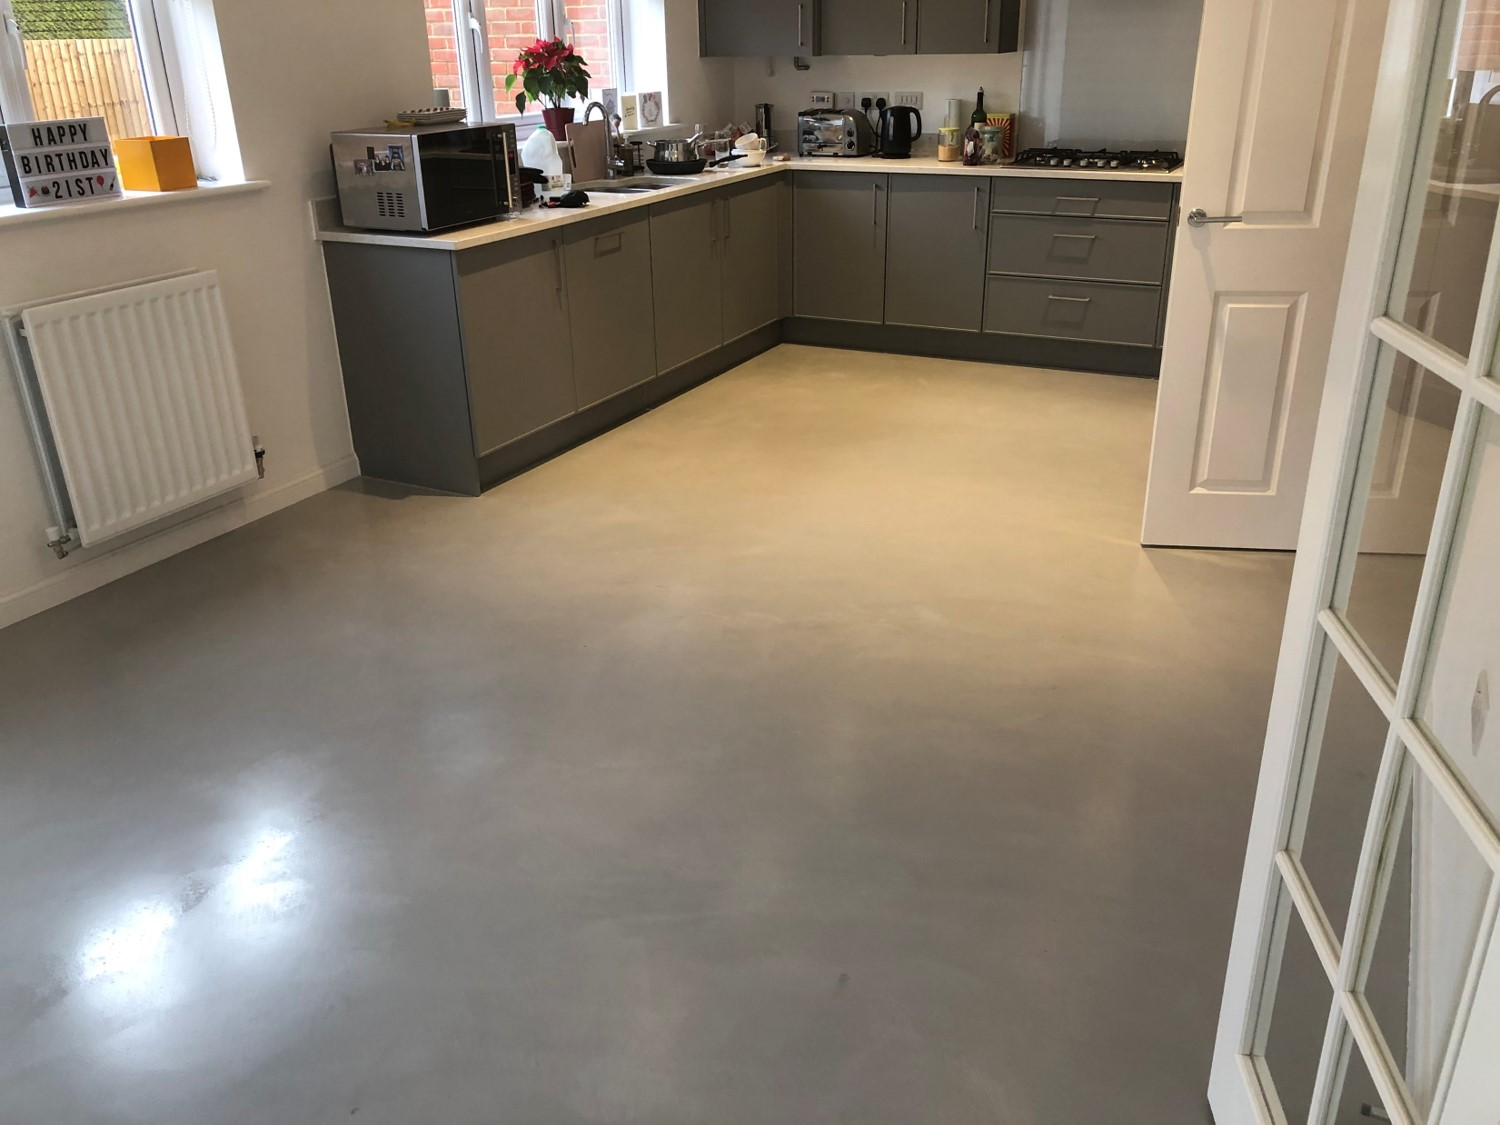 Polished concrete floor Kitchen diner in Bedfordshire by Polished Concrete Specialists